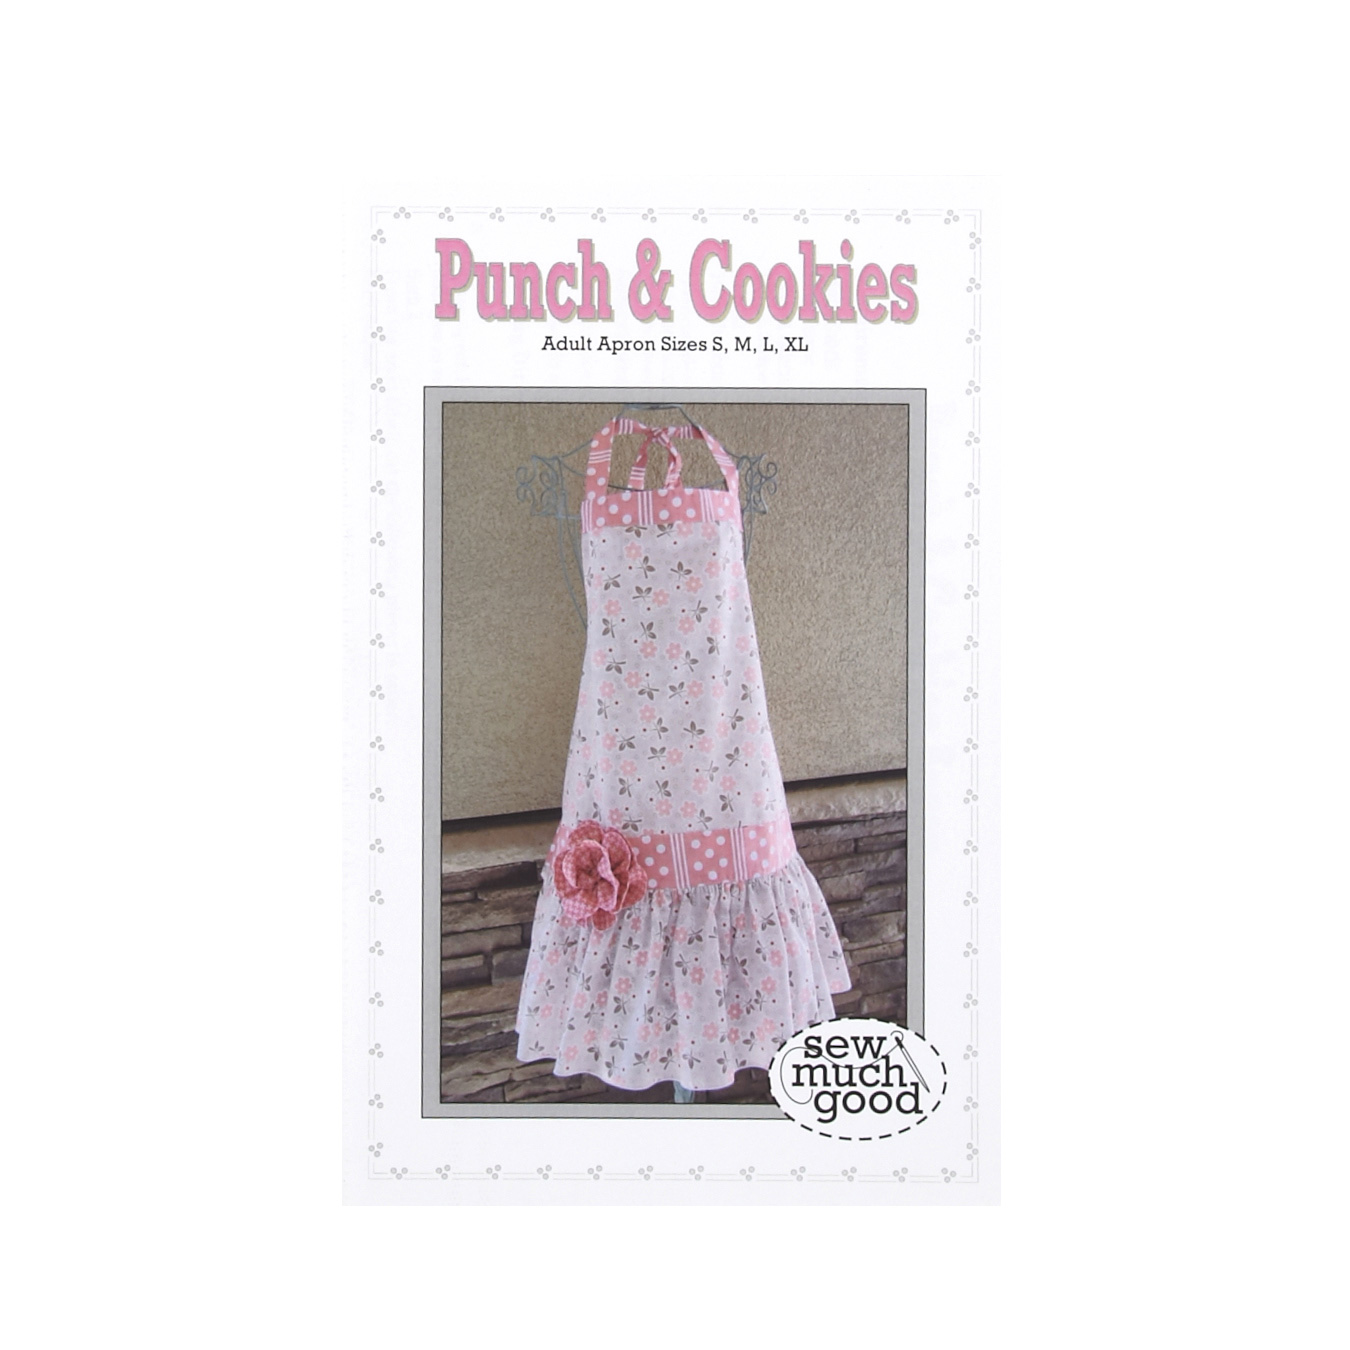 Vintage Aprons, Retro Aprons, Old Fashioned Aprons & Patterns Sew Much Good Punch  Cookies Apron Pattern $9.98 AT vintagedancer.com